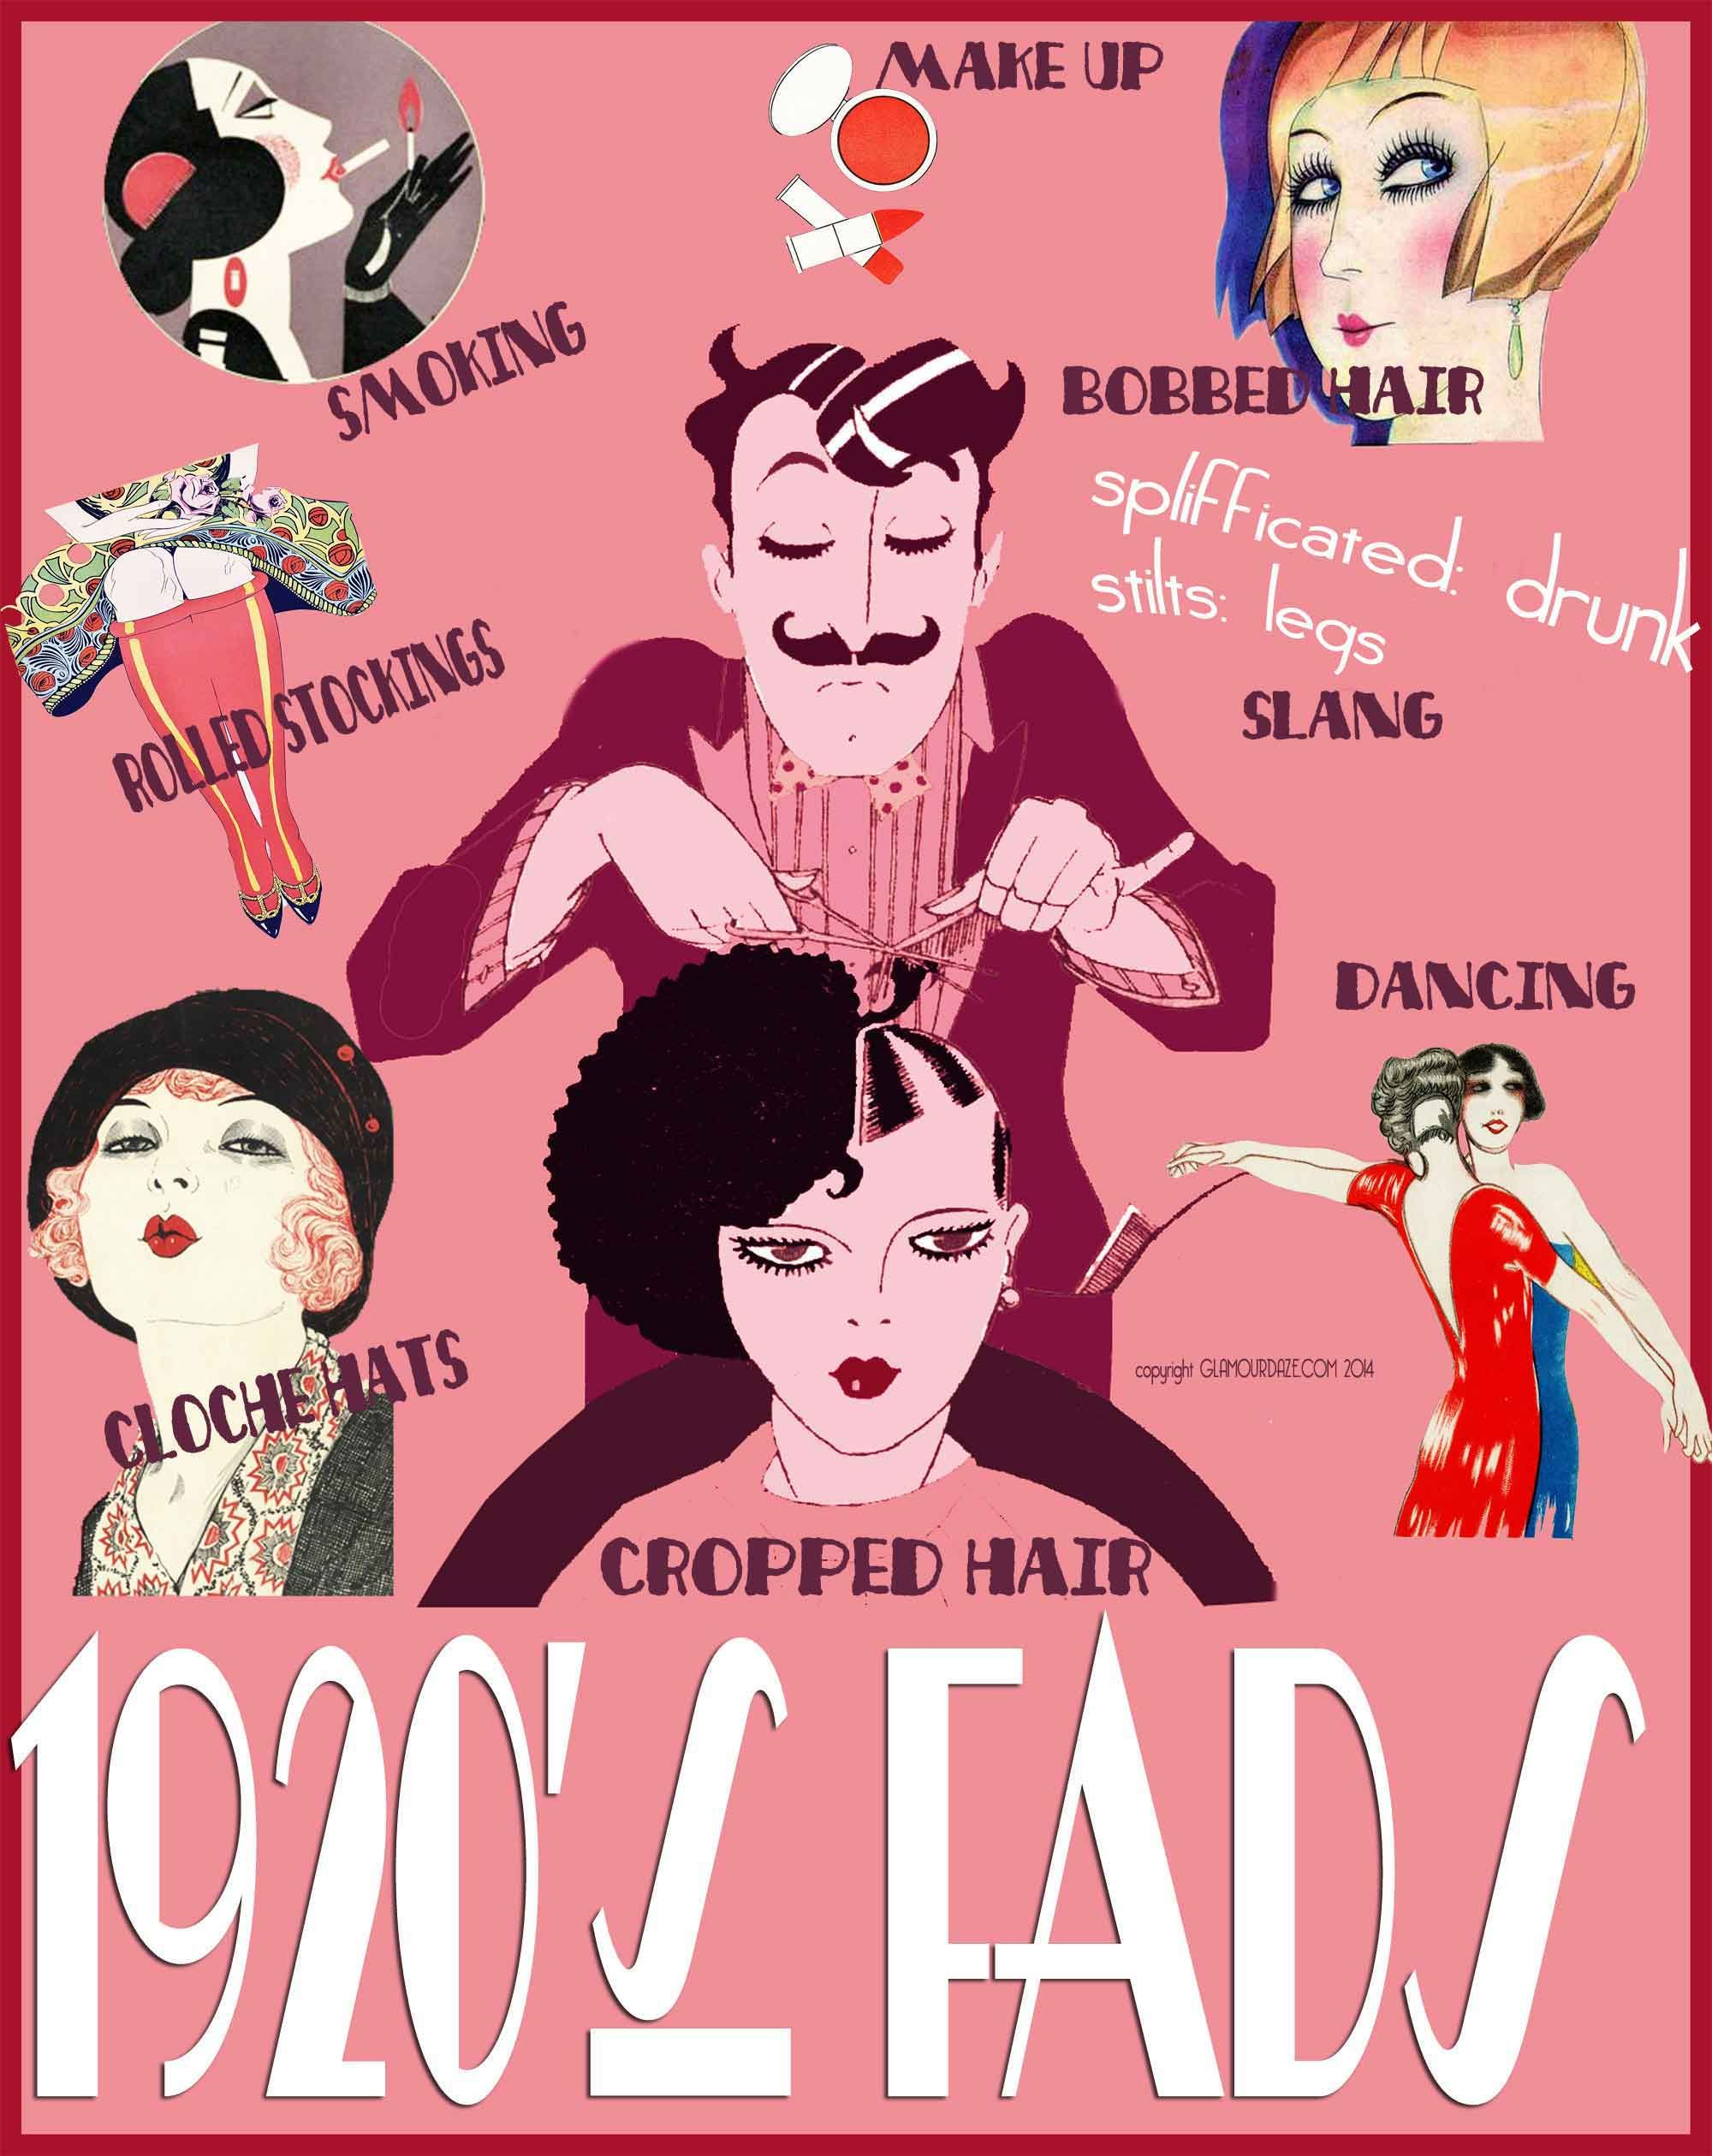 History of Women's 1920s Fashion 1920 to 1929 Fashion